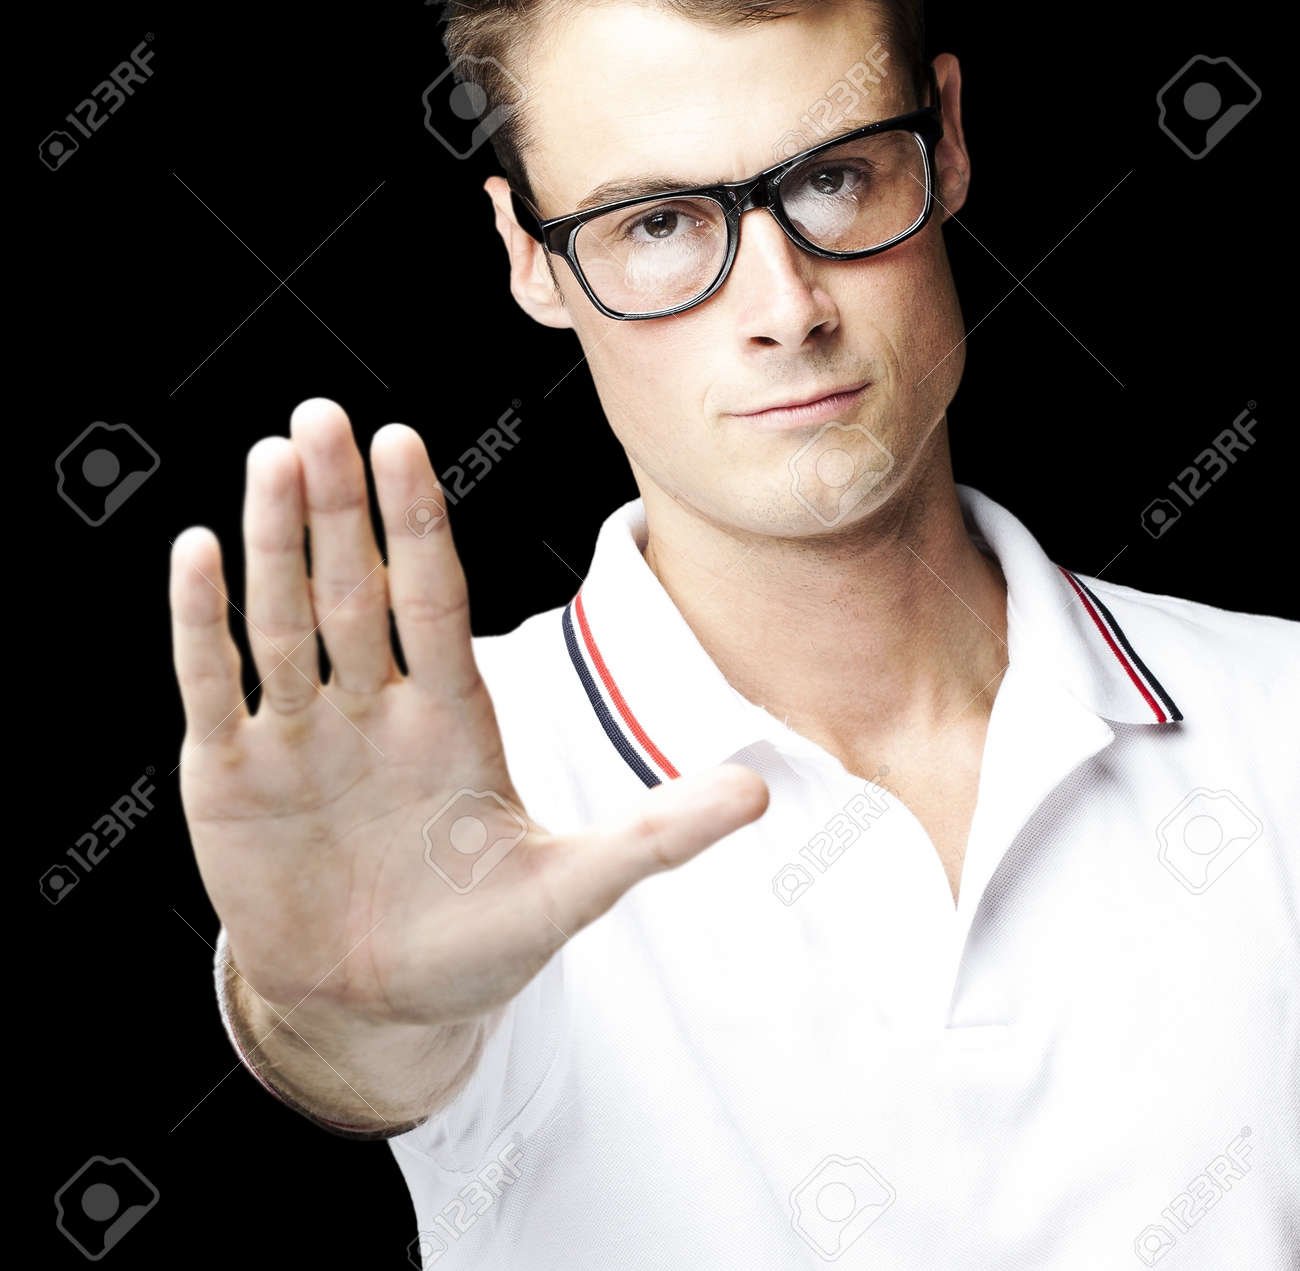 portrait of young man doing stop symbol over black background Stock Photo - 12105808